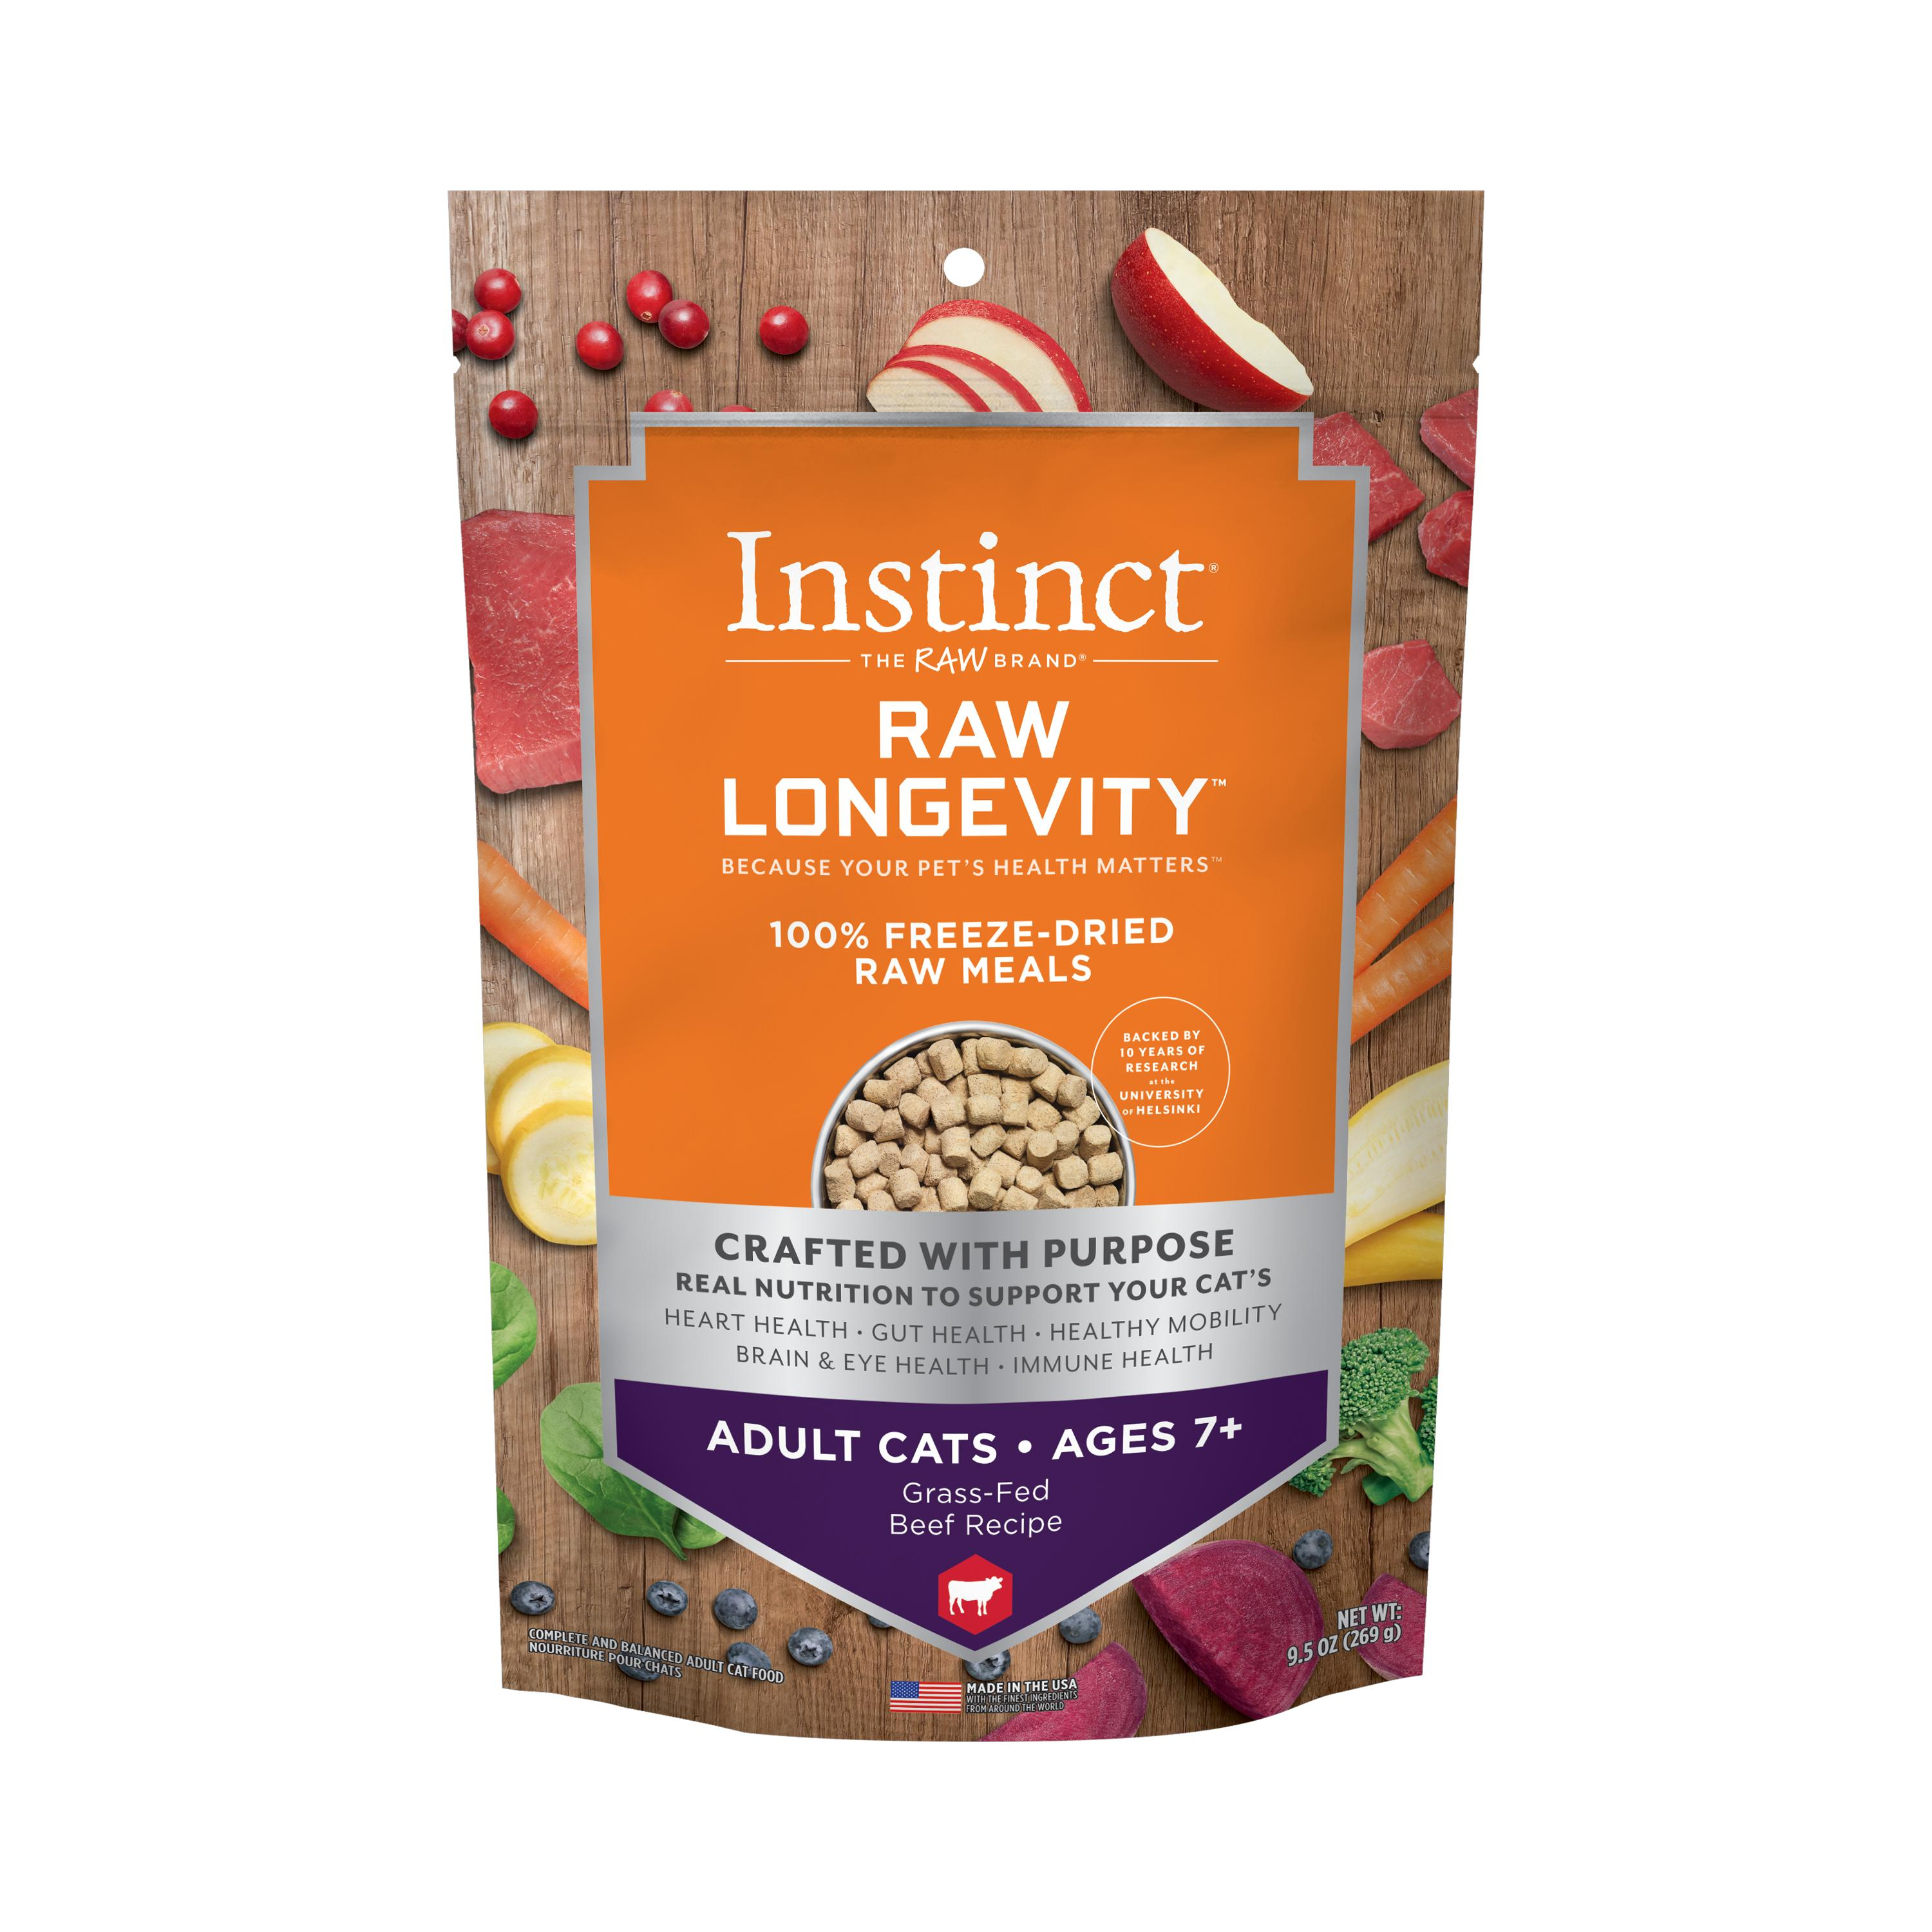 Instinct by Nature's Variety Raw Longevity Grass-Fed Beef Age 7+ 100% Freeze-Dried Cat Food Image